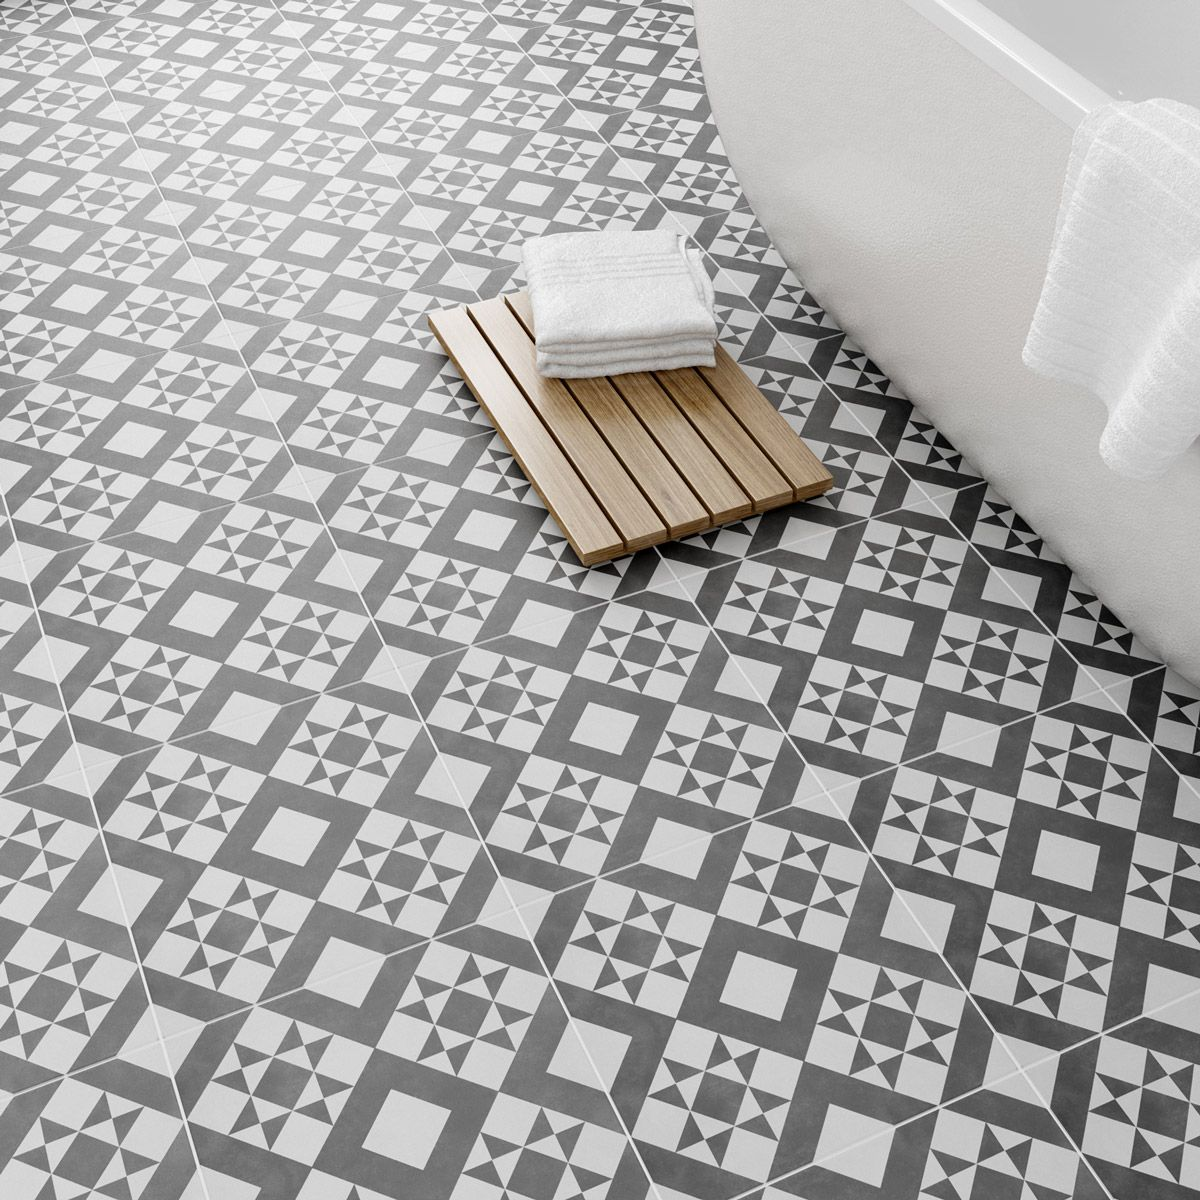 See Our British Ceramic Tile Retro Feature Floor Tile 331mm X 331mm Plus Many More Floor Tiles At Victo Patterned Floor Tiles Tile Floor Cleaning Ceramic Tiles